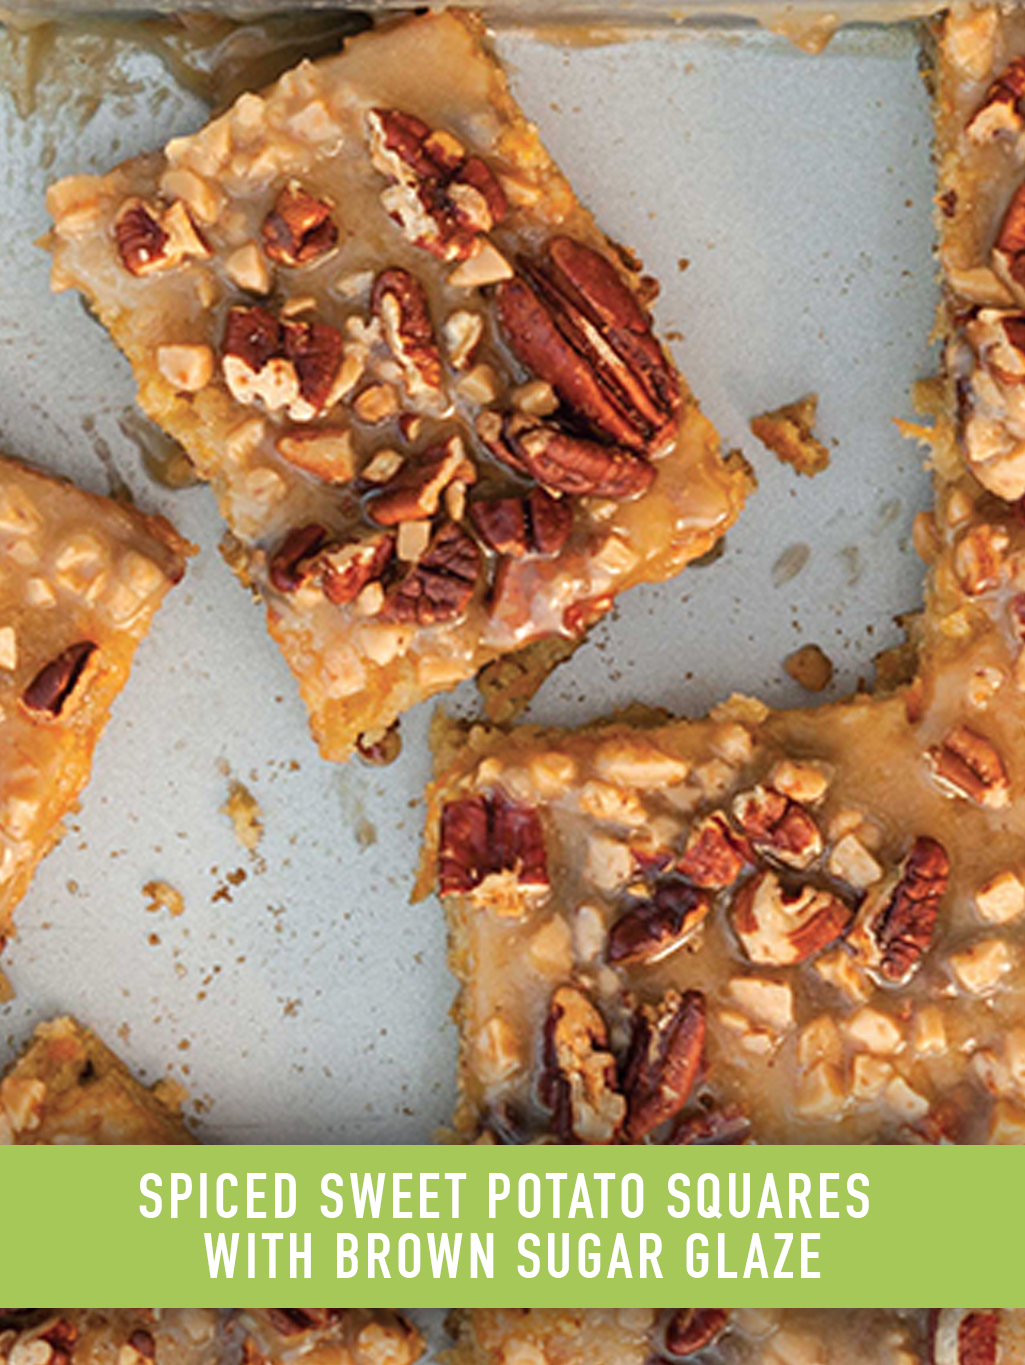 Spiced Sweet Potato Squares  with Brown Sugar Glaze.jpg